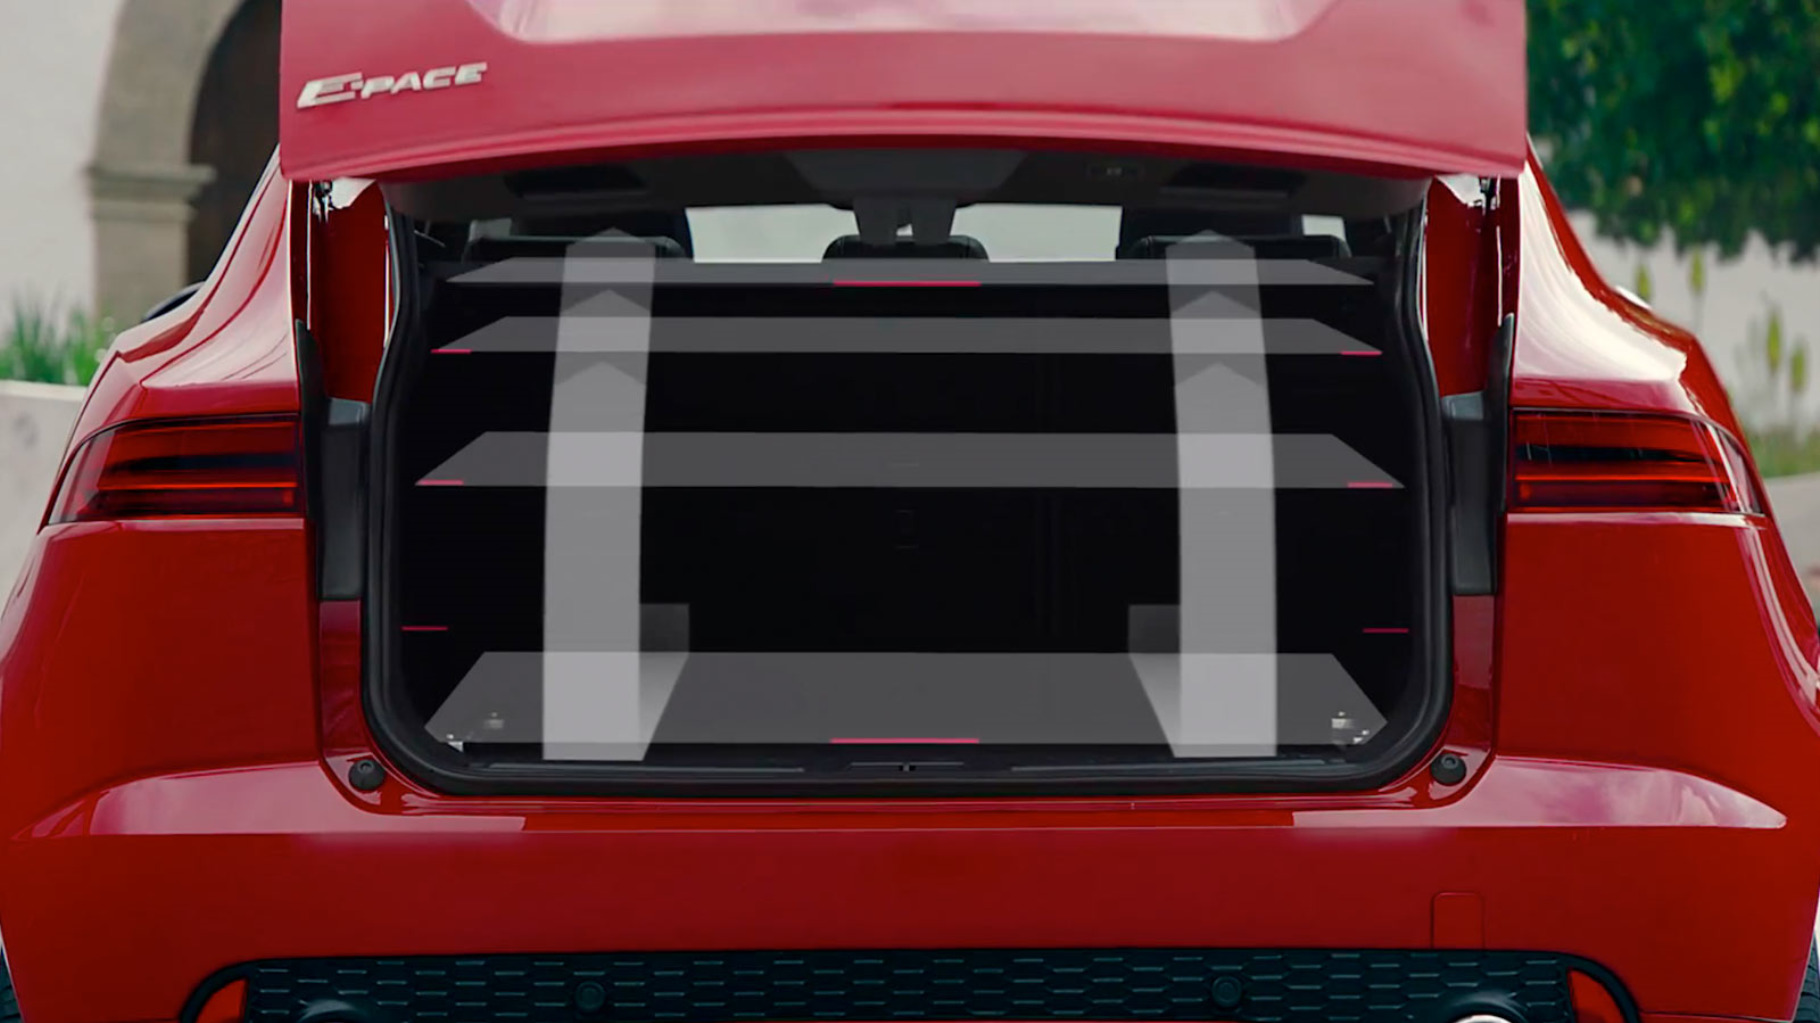 An image of the Jaguar E-Pace Loadspace.